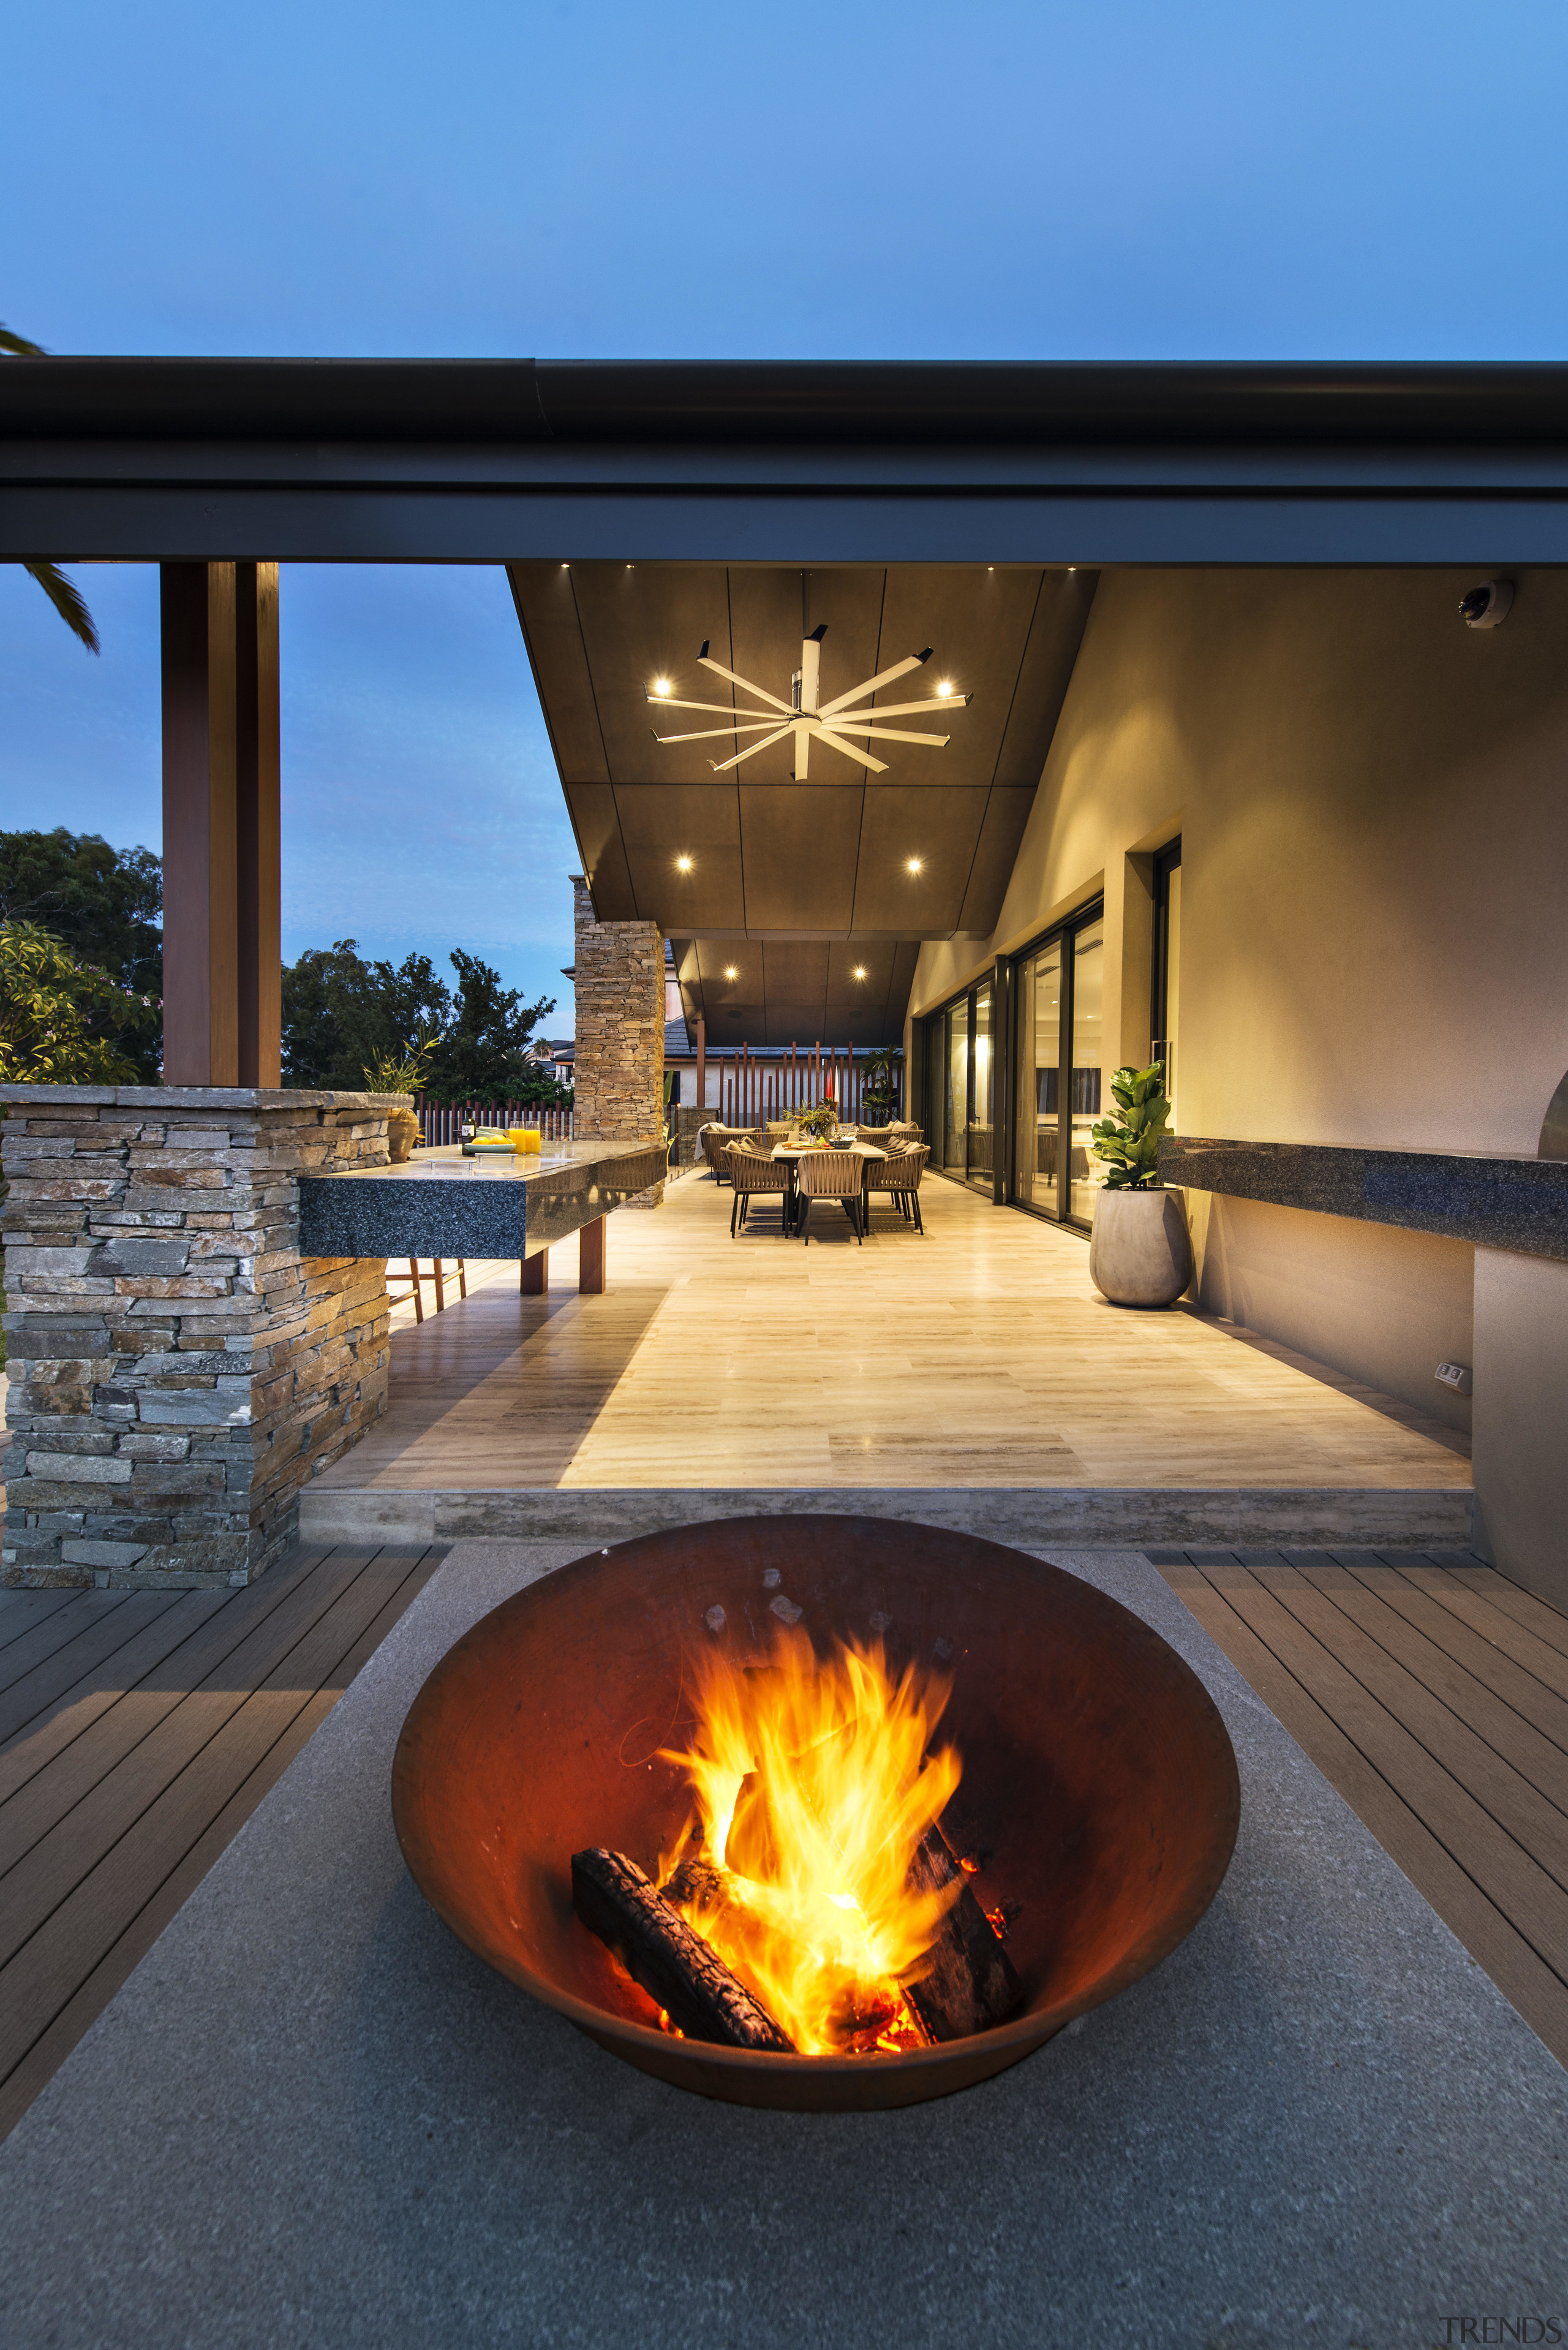 The spun-steel firepit sits on a granite slab. fireplace, heat, home